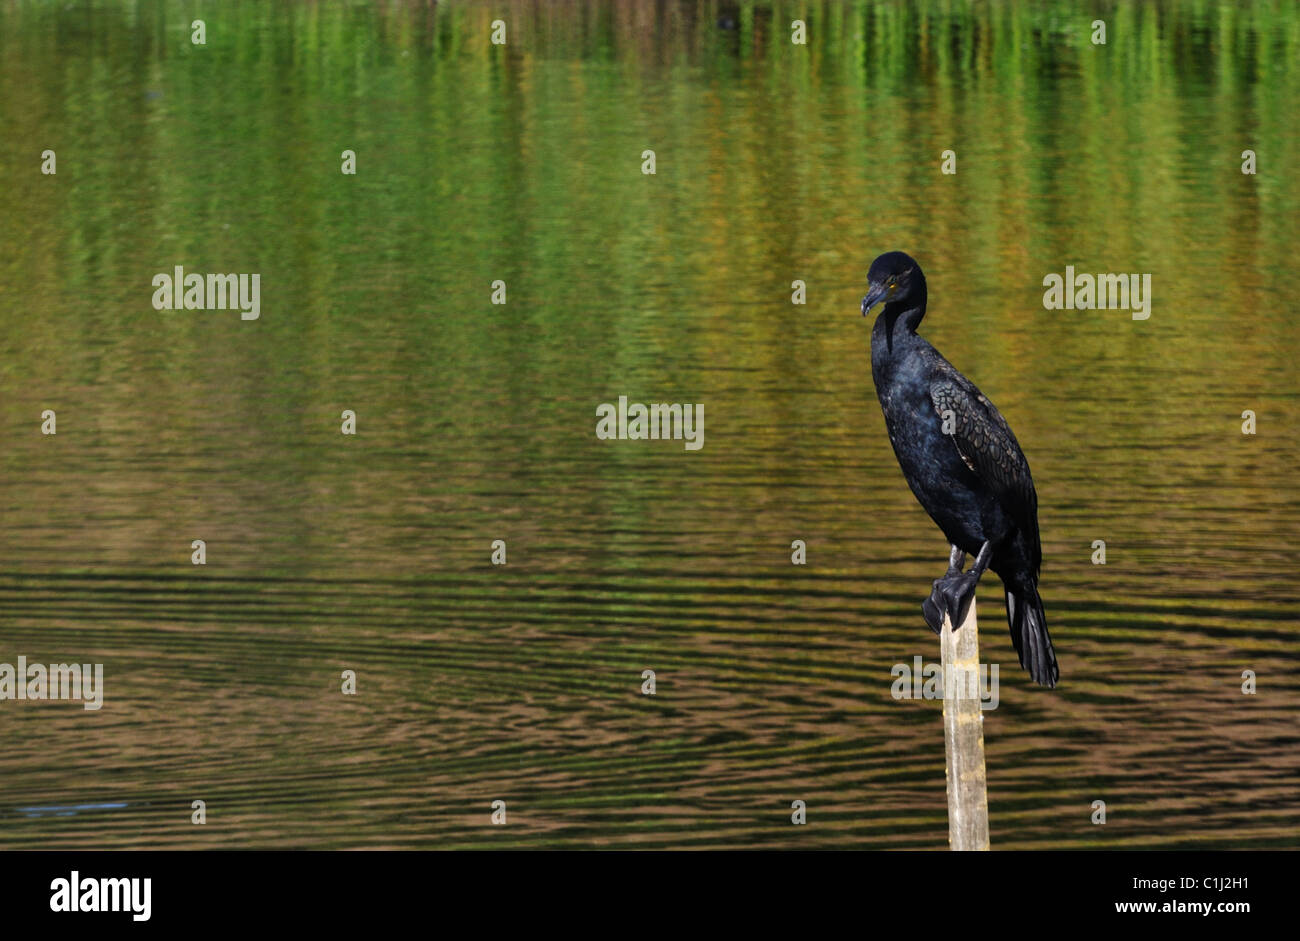 Solitary Cormorant sat on a post - Stock Image